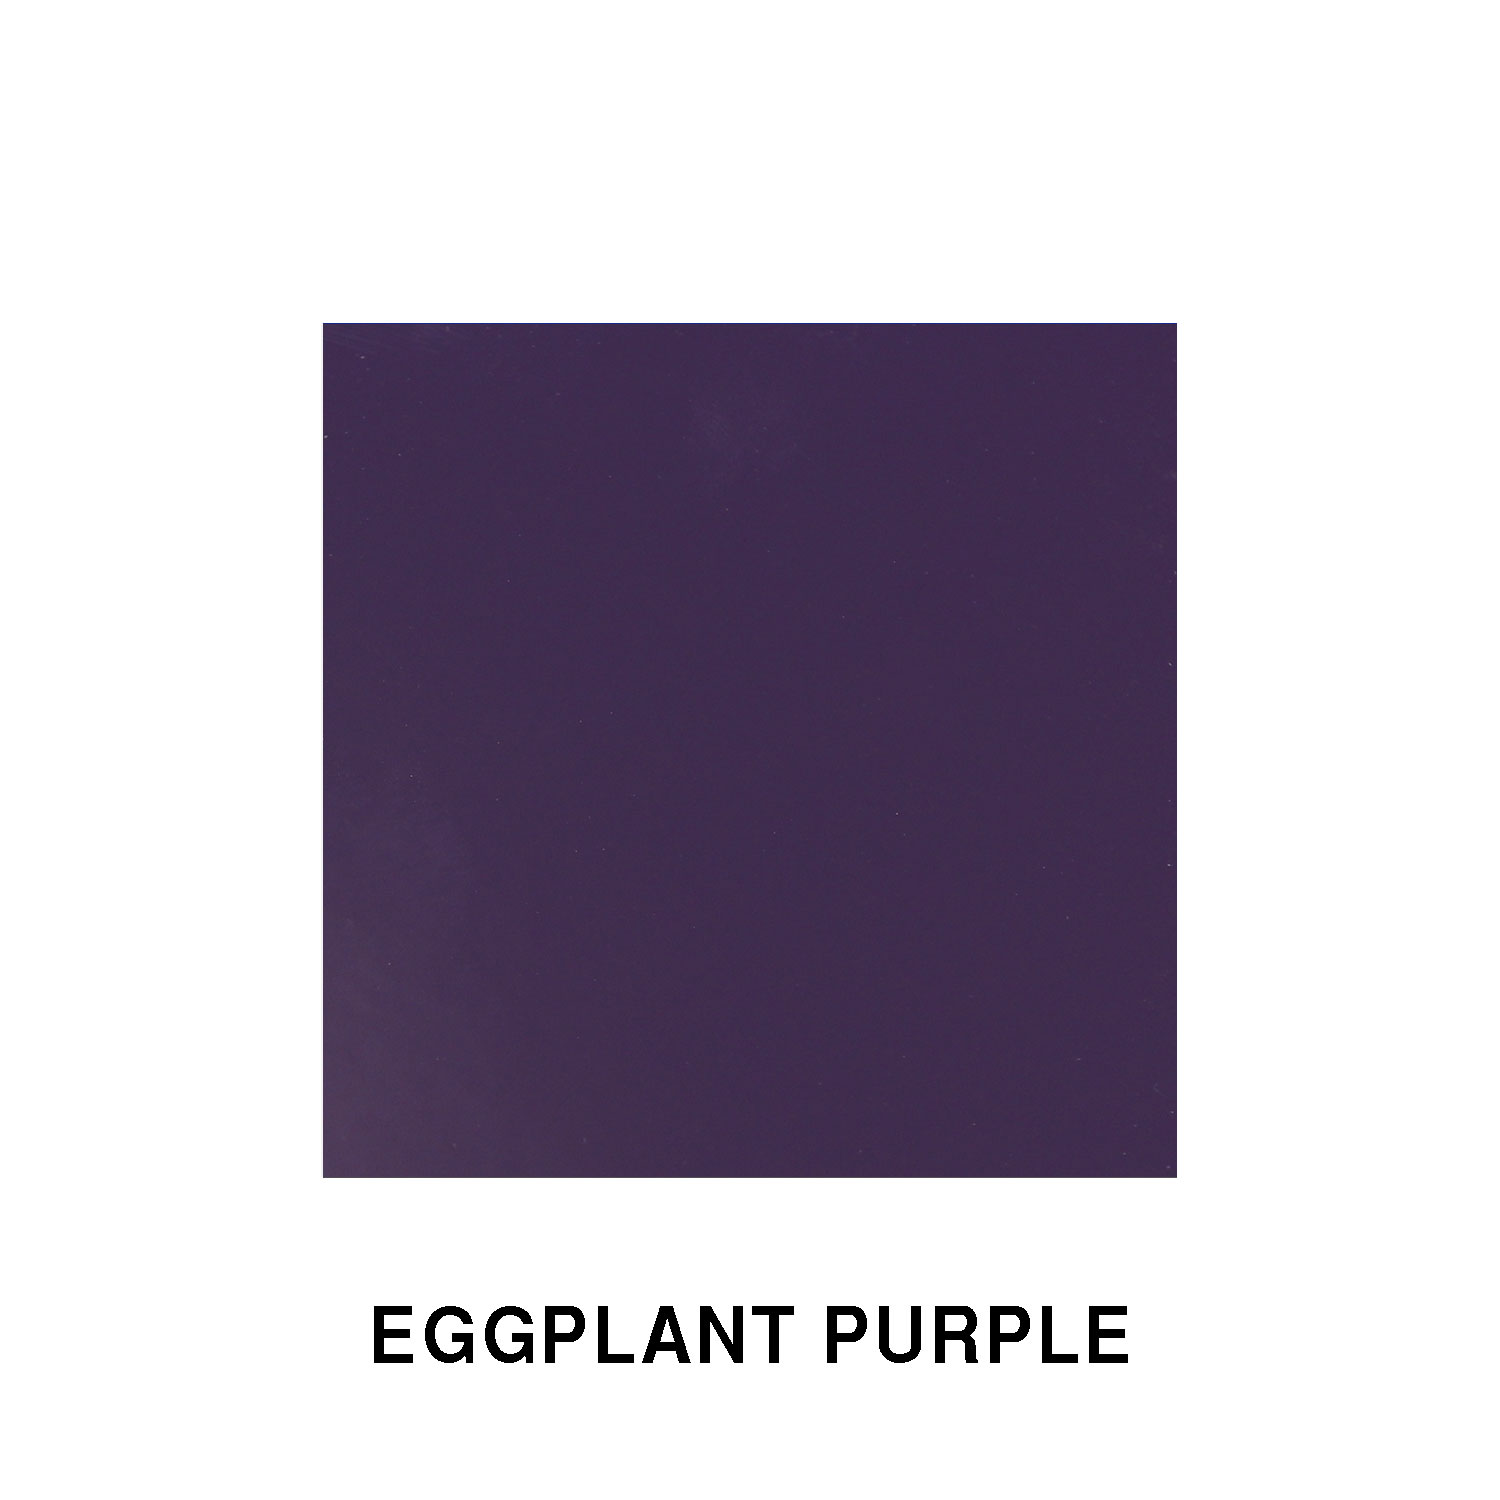 Eggplant Purple Fiberglass Finish